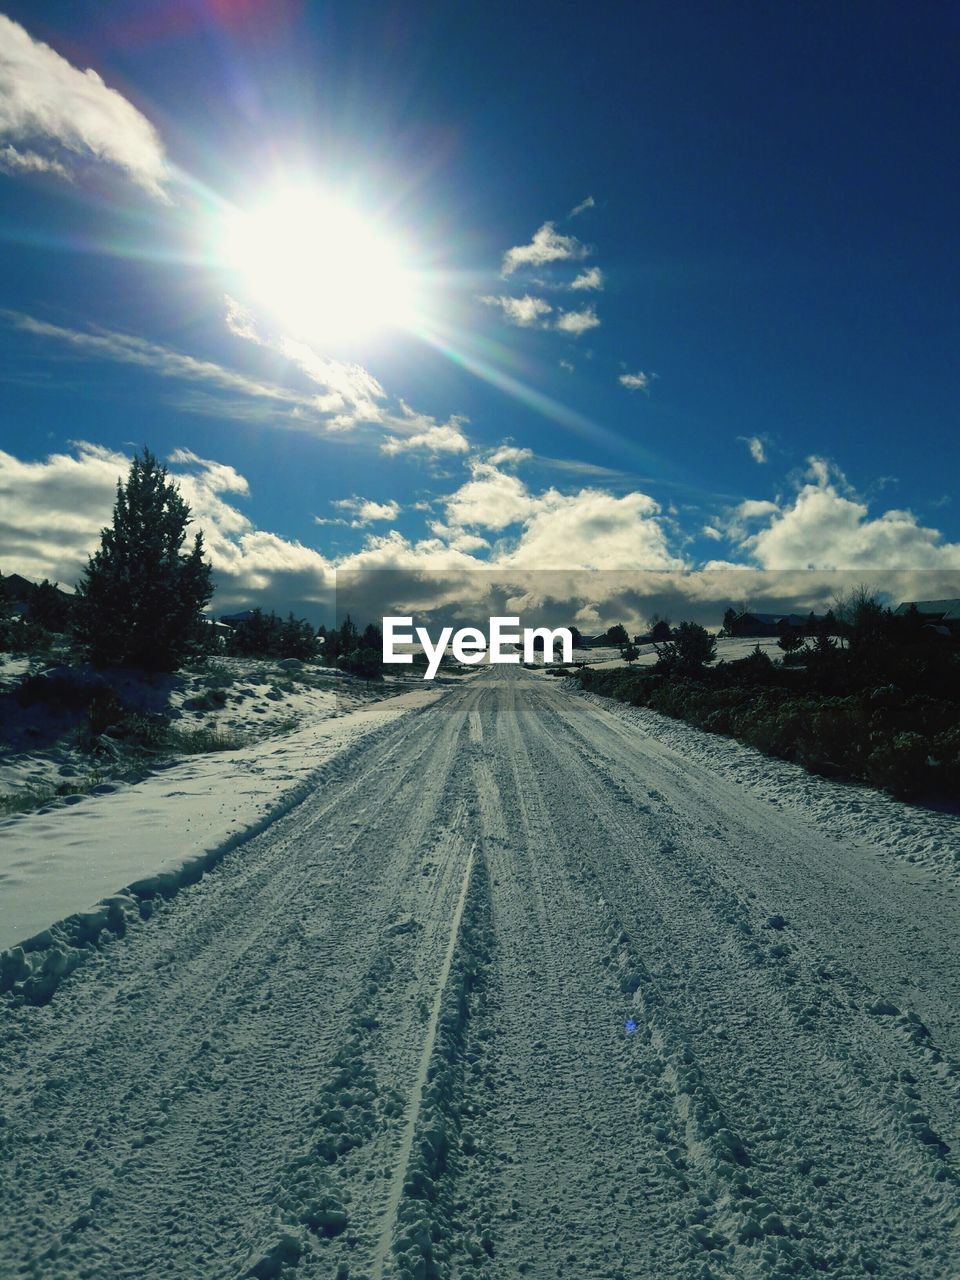 sunlight, sun, lens flare, sunbeam, sky, nature, snow, day, landscape, beauty in nature, outdoors, scenics, winter, road, no people, tire track, cold temperature